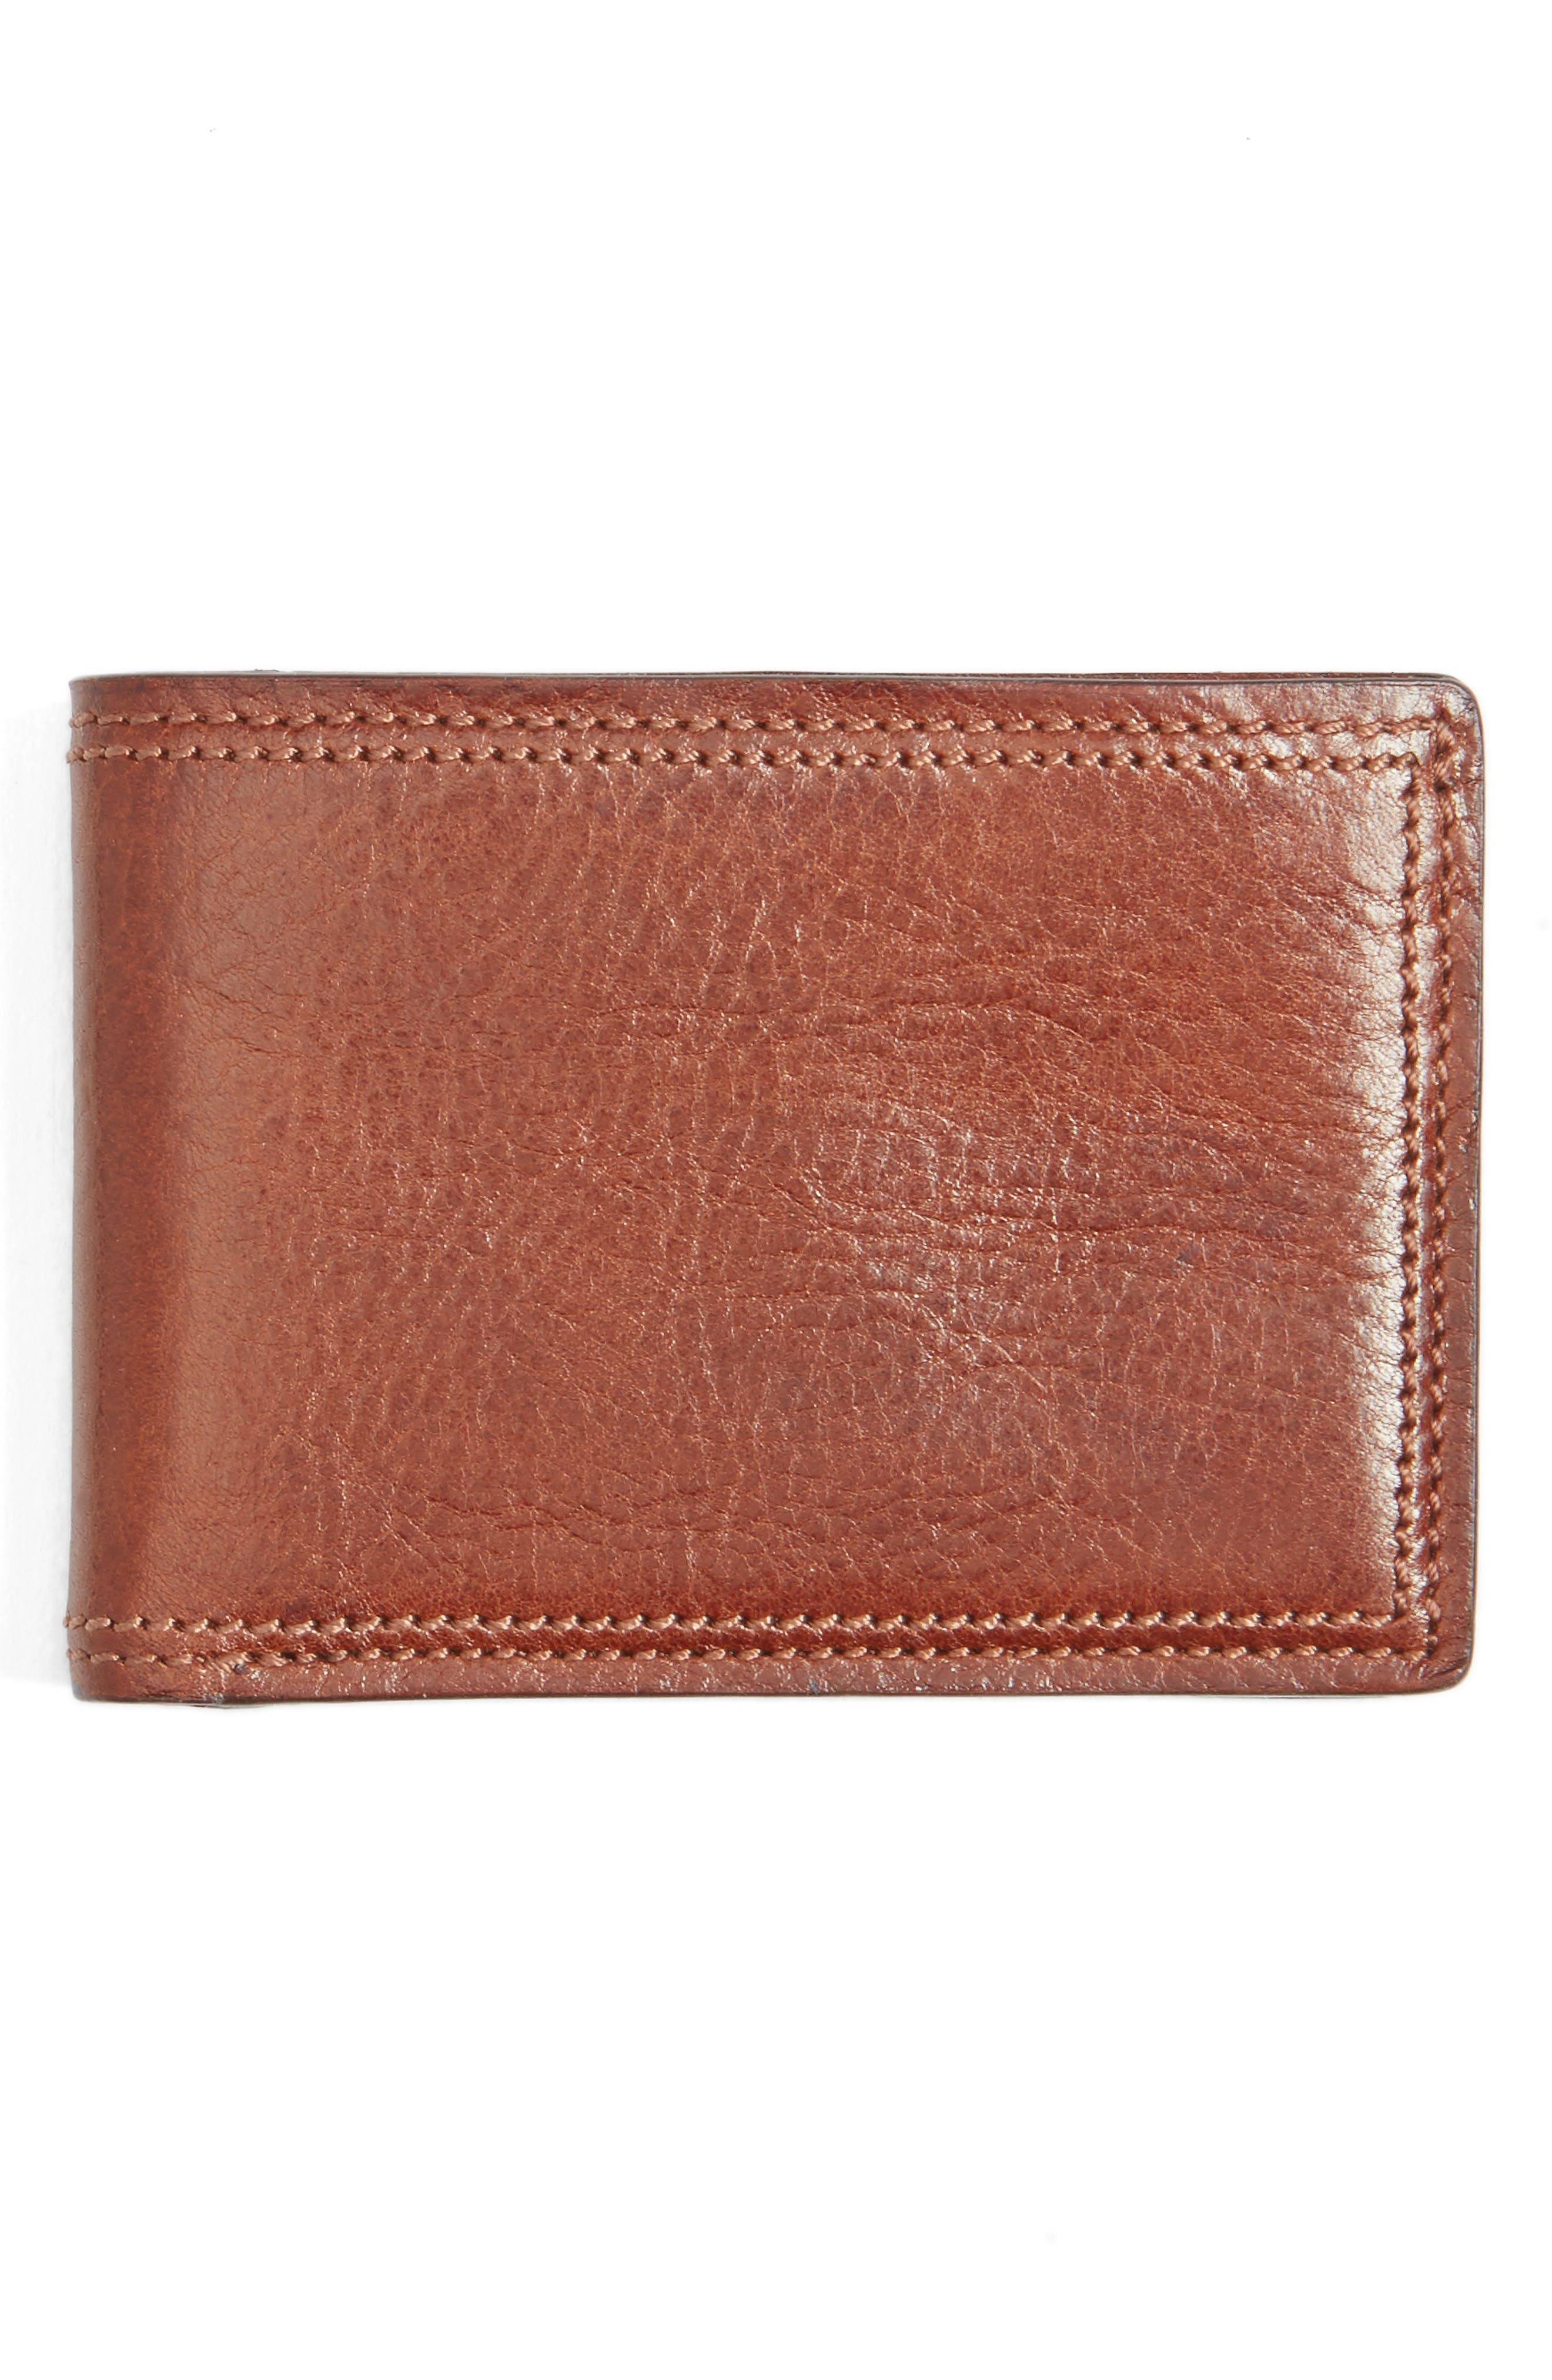 BOSCA Leather Bifold Wallet, Main, color, 233